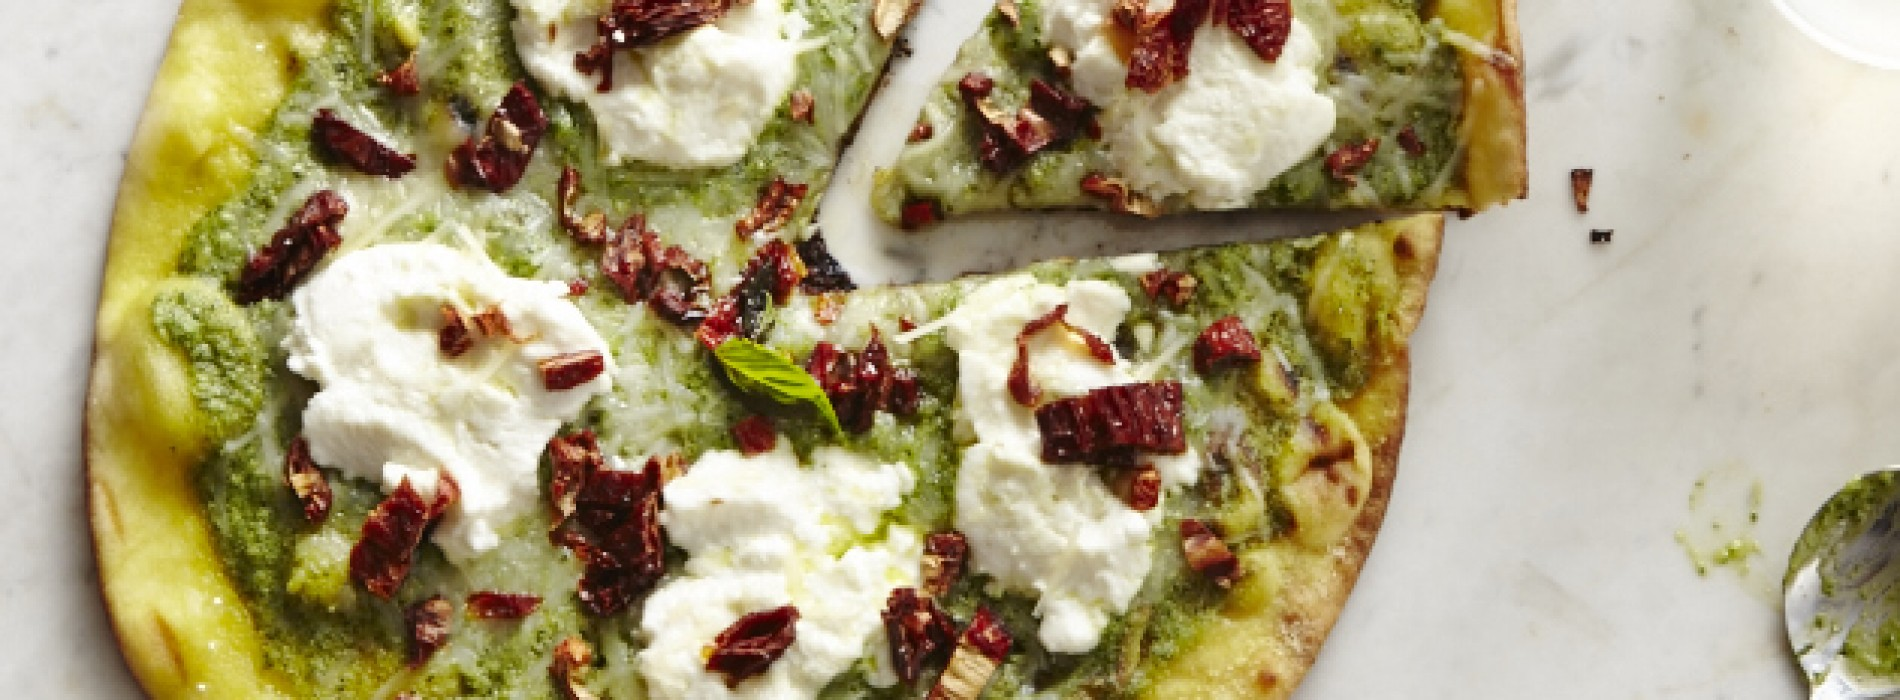 Spinach Pesto Pizza with Ricotta and Sun-Dried Tomatoes